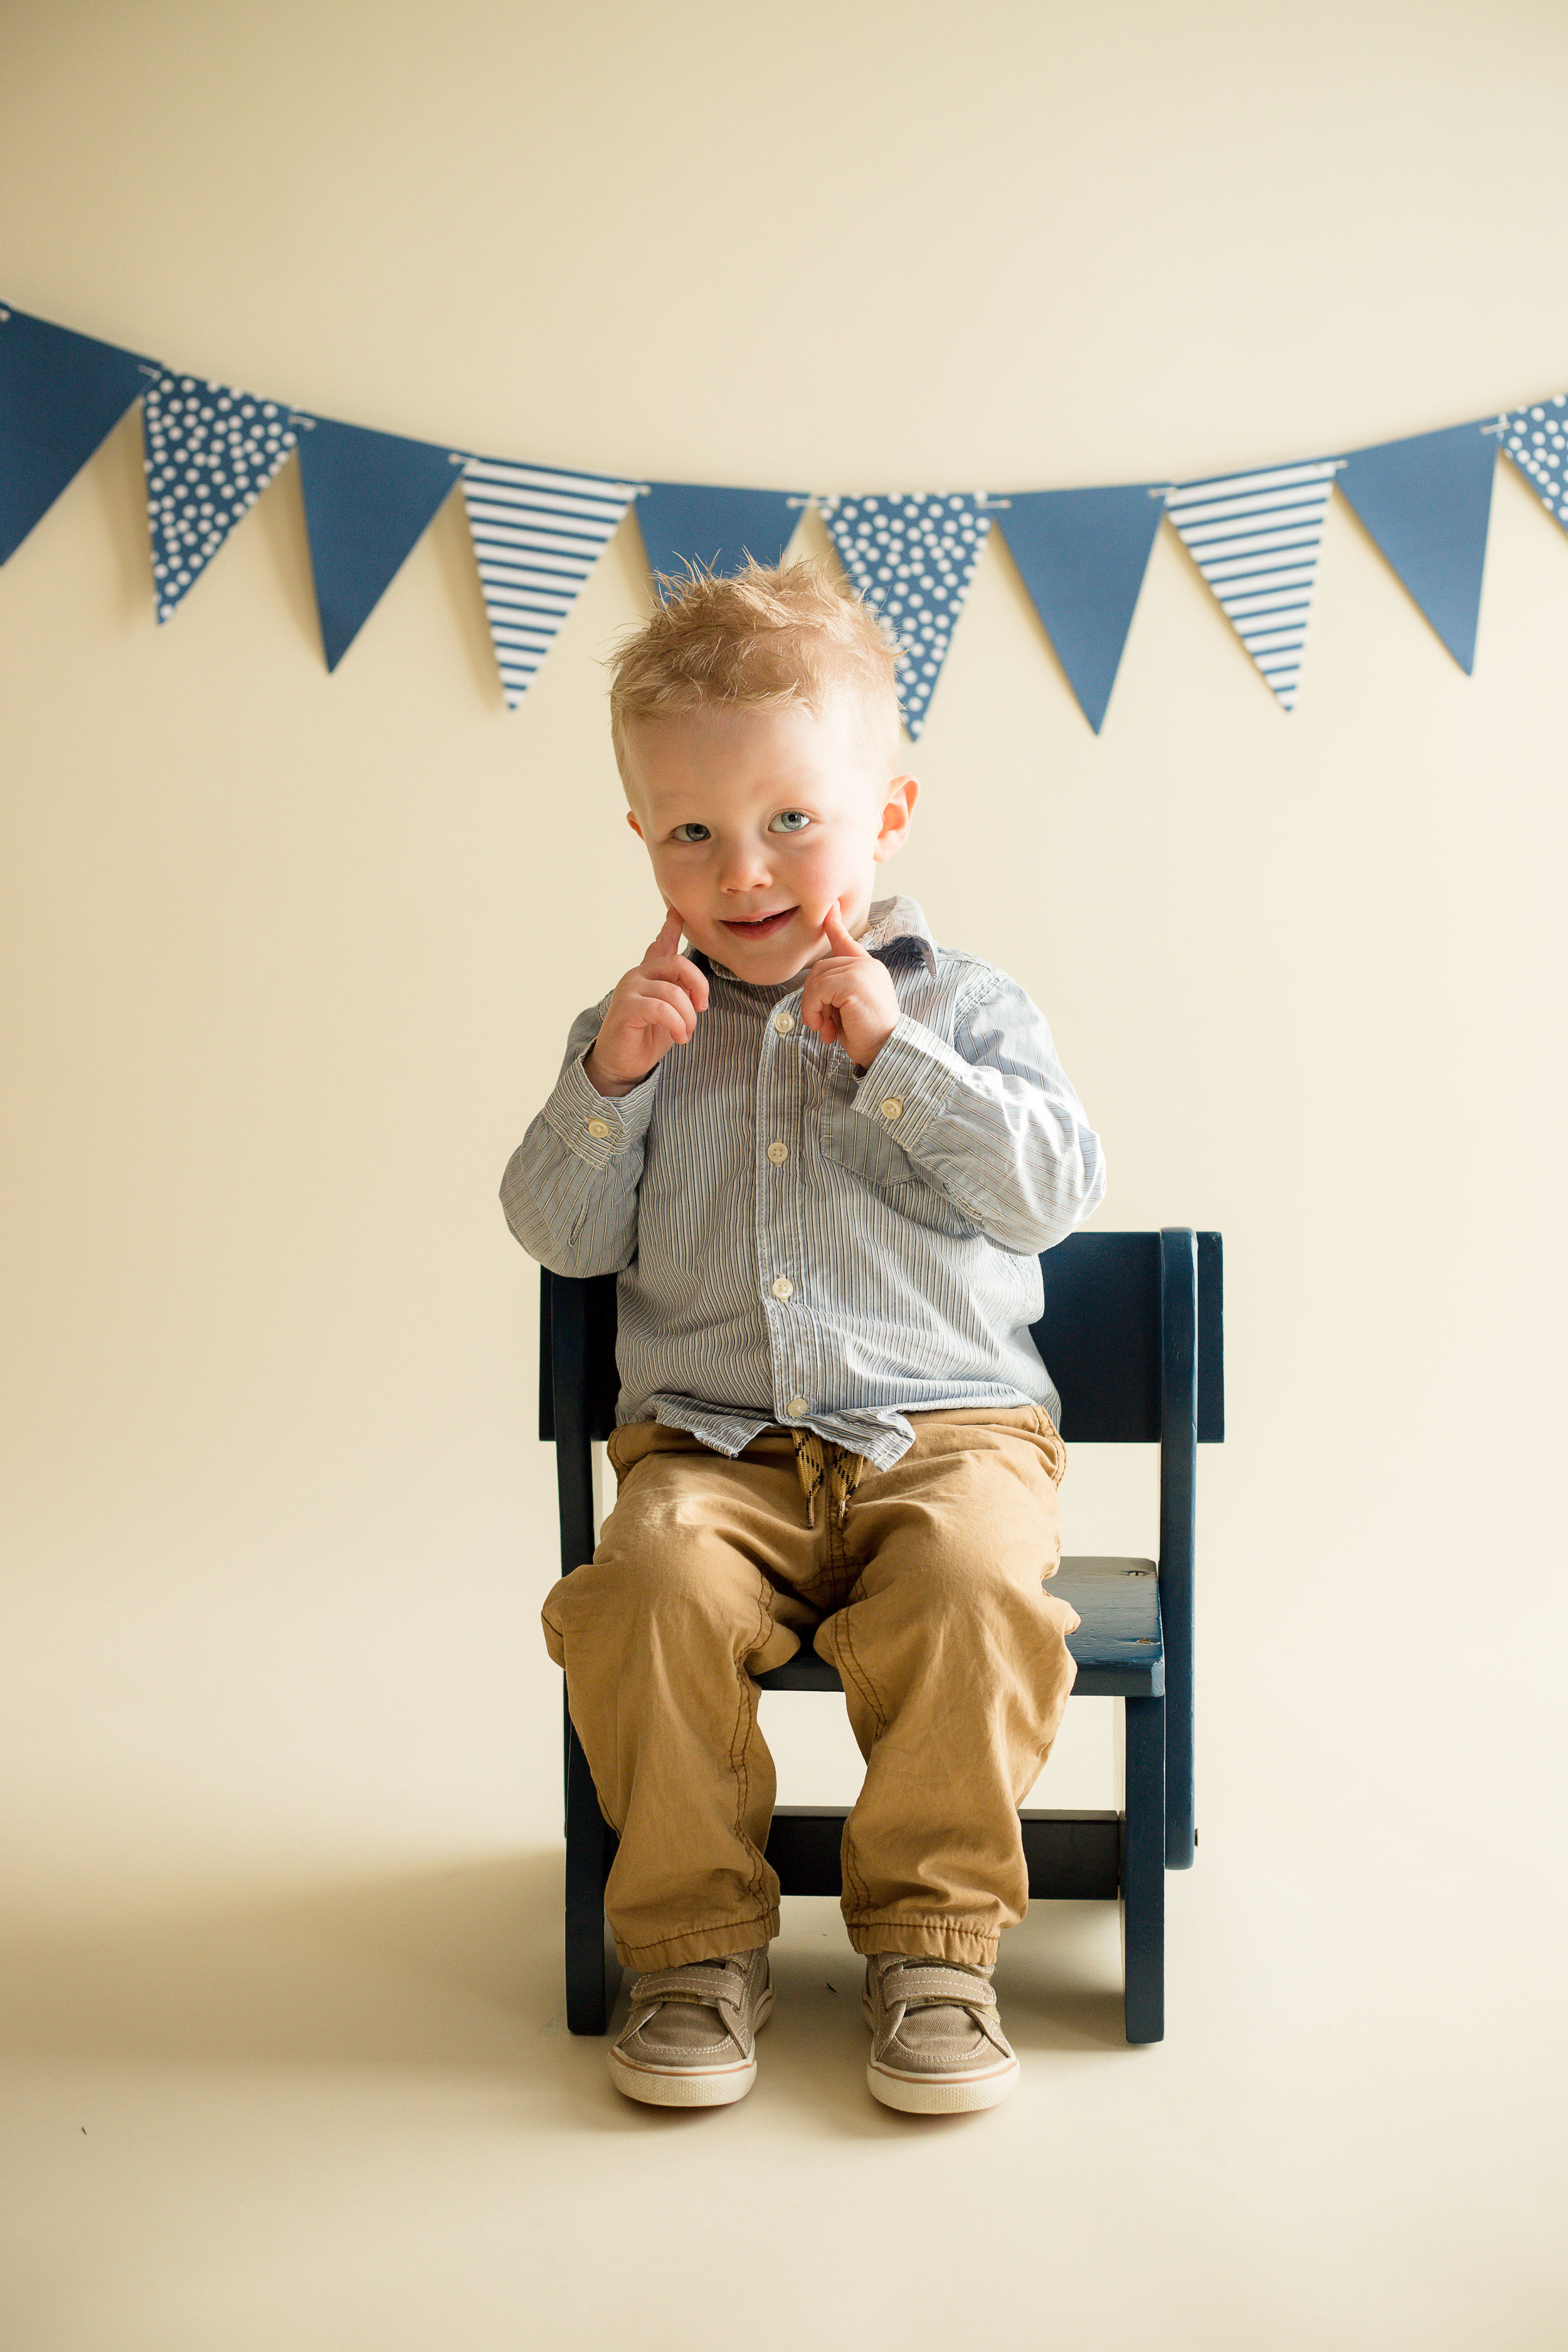 """At age two, Jack is into TV shows  Puppy Dog Pals  and  Mickey Mouse . He also likes to sing nursery rhymes such as """"If You're Happy and You Know It,""""""""Twinkle, Twinkle Little Star,""""and """"Itsy Bitsy Spider."""" During this photo, he sang and did the moves to """"If You're Happy and You Know It."""""""